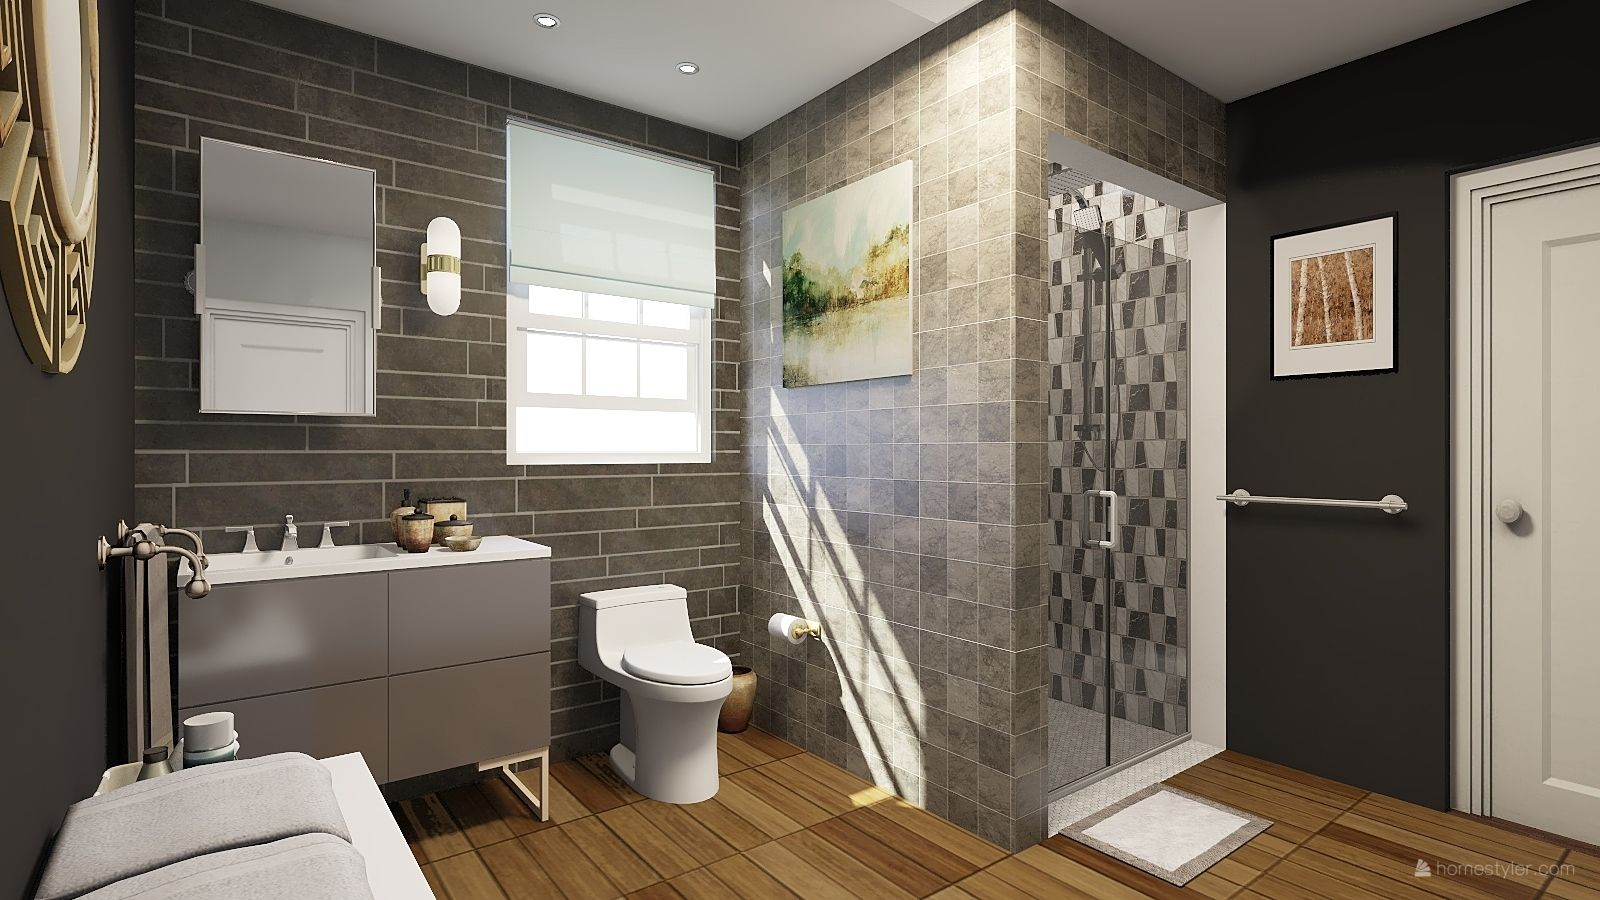 Bathroom Design By Jorge Gutierrez Interiordesign Homedecor Floor Planner 3d Home Design Software Bathroom Design